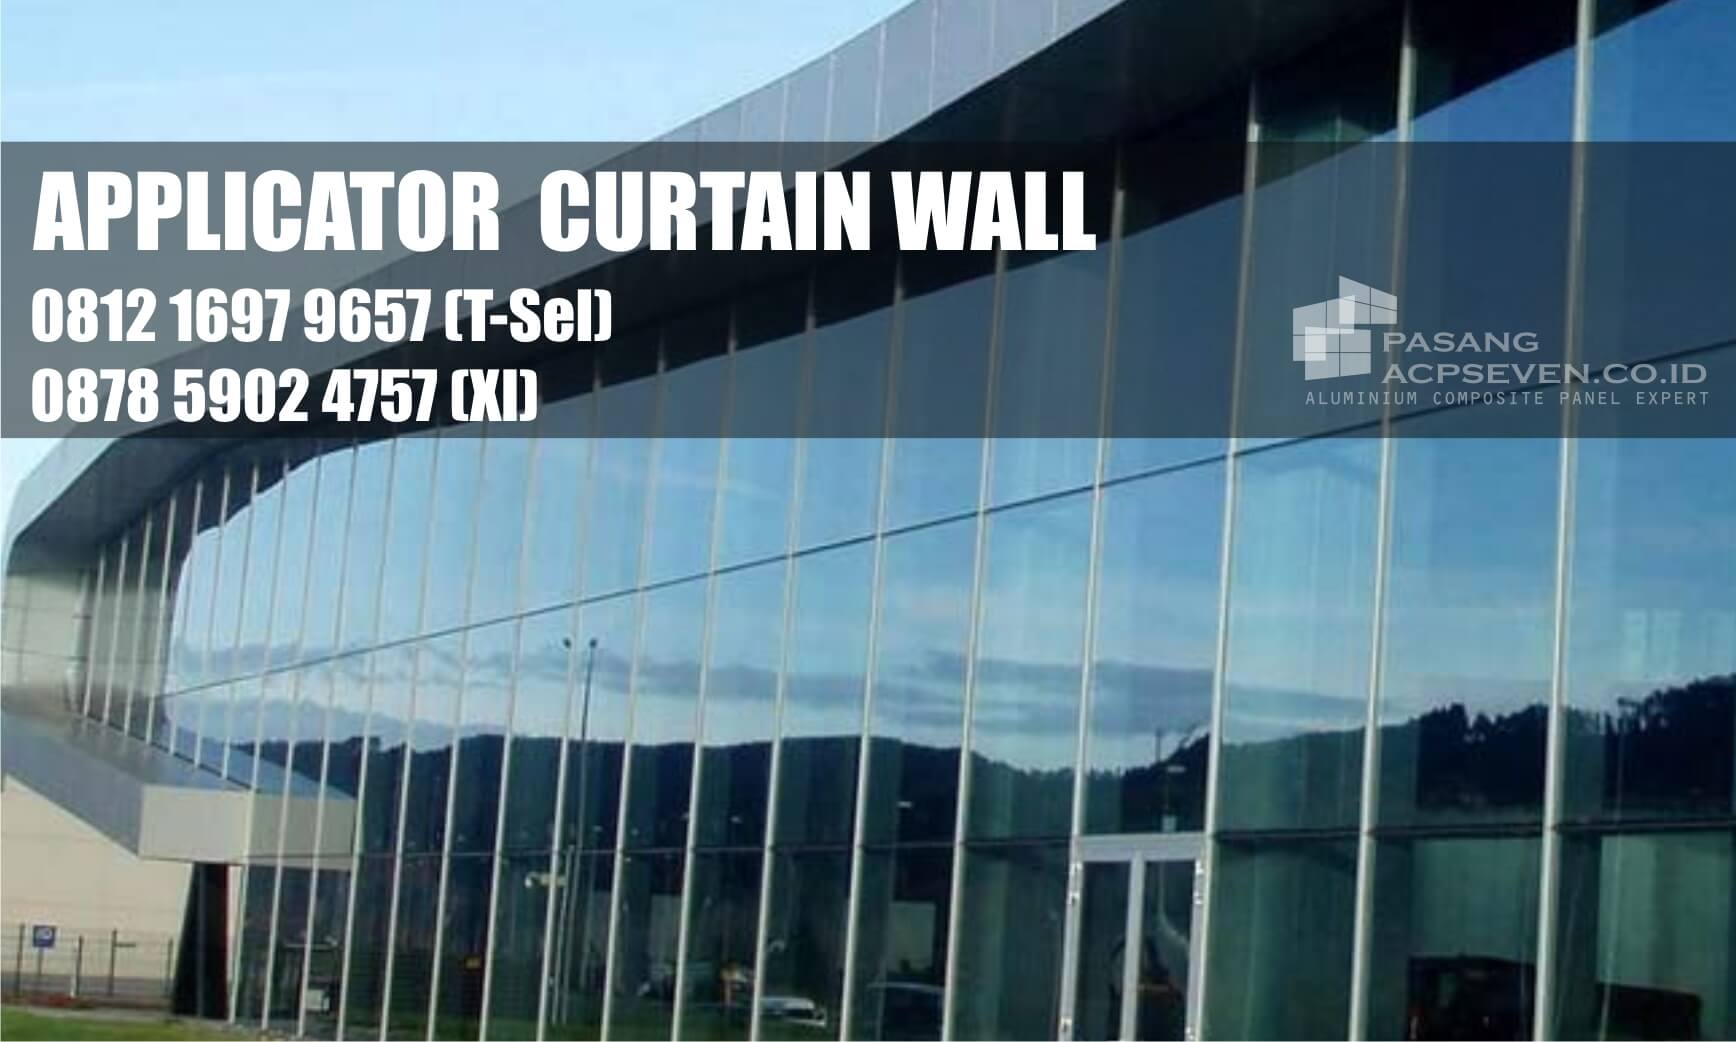 curtain wall surabaya, curtain wall di surabaya, kontraktor curtain wall surabaya